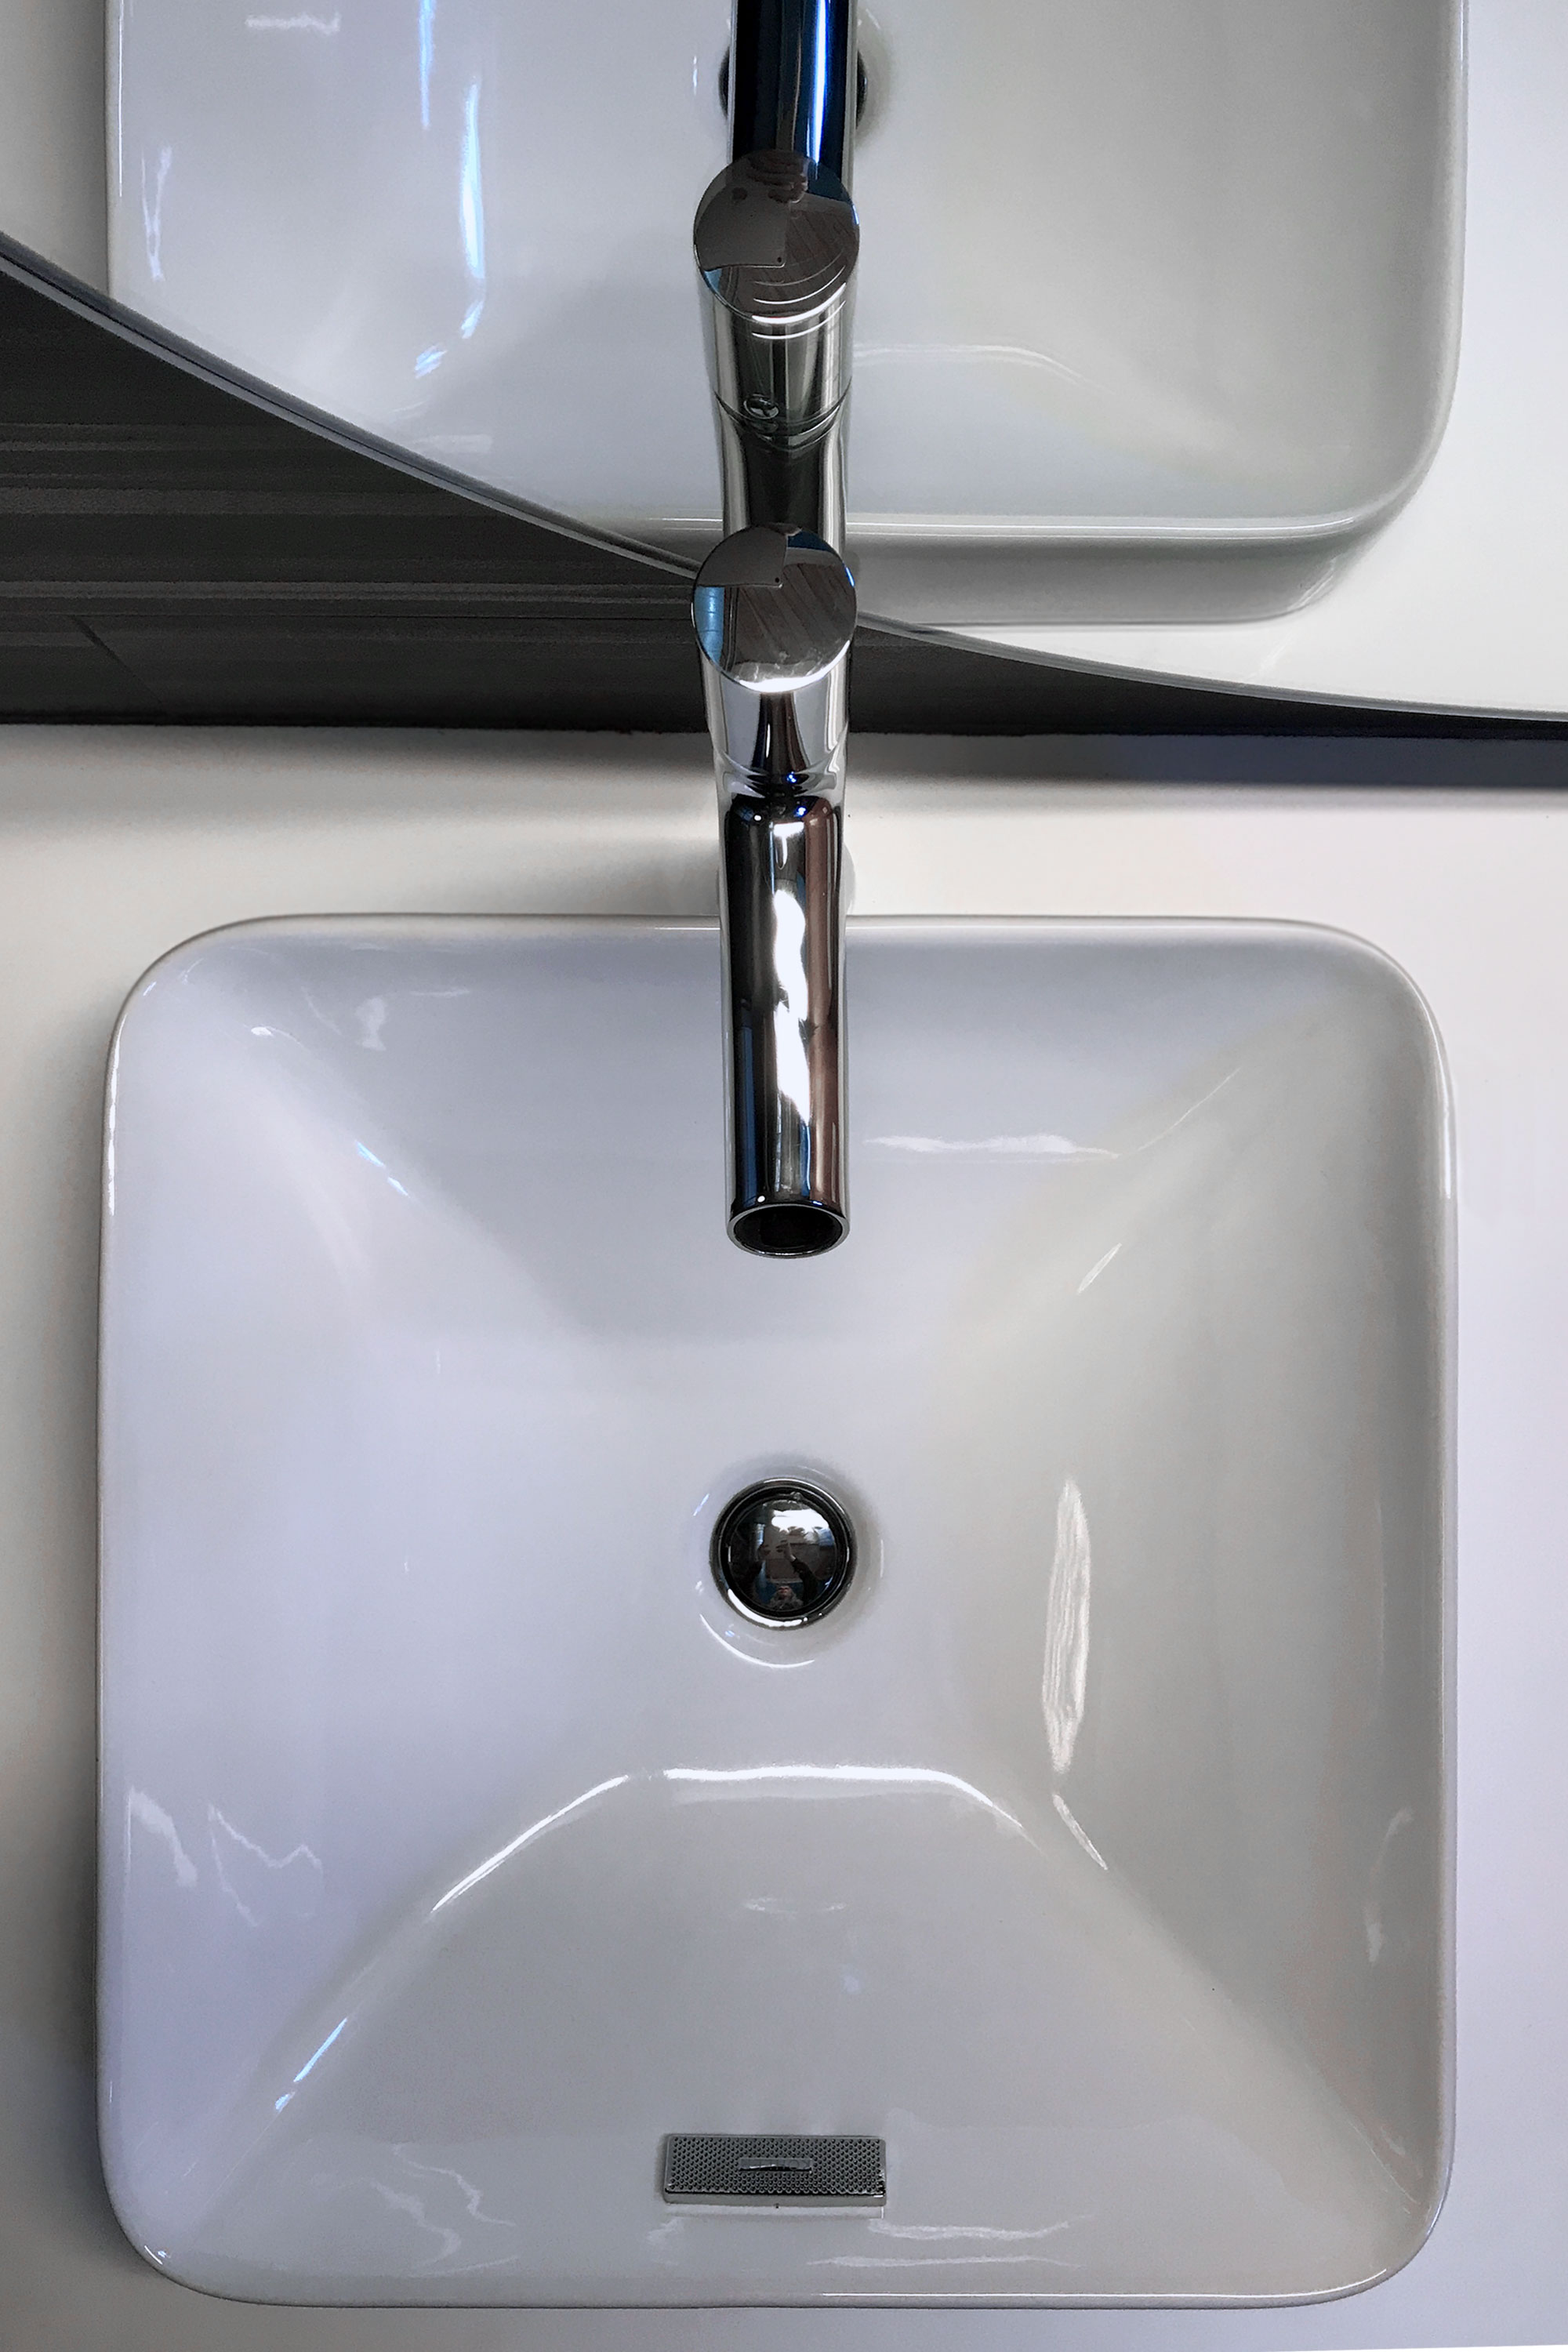 JZID-Third-Ward-Bathroom-Sink-Aerial.jpg